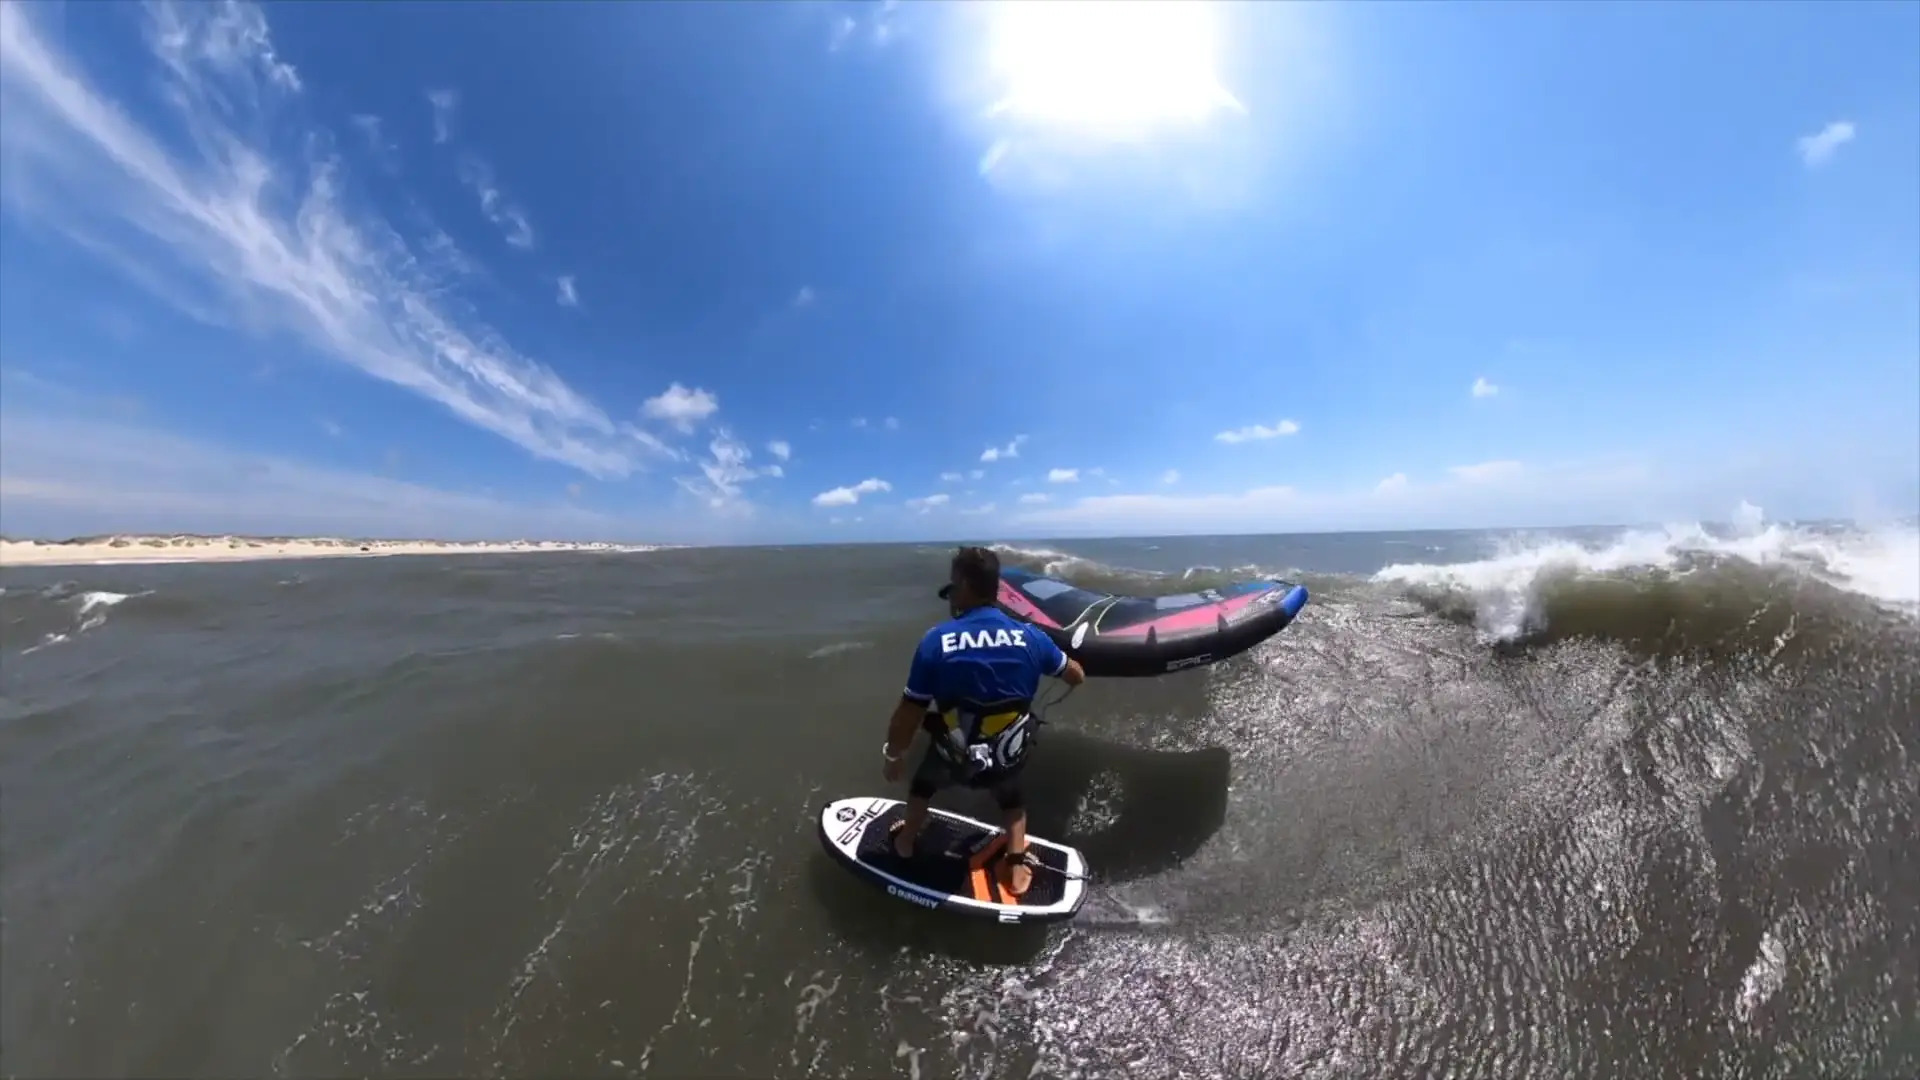 WINGING with Mr. Tabeling - with Epic Kites Kiteboarding